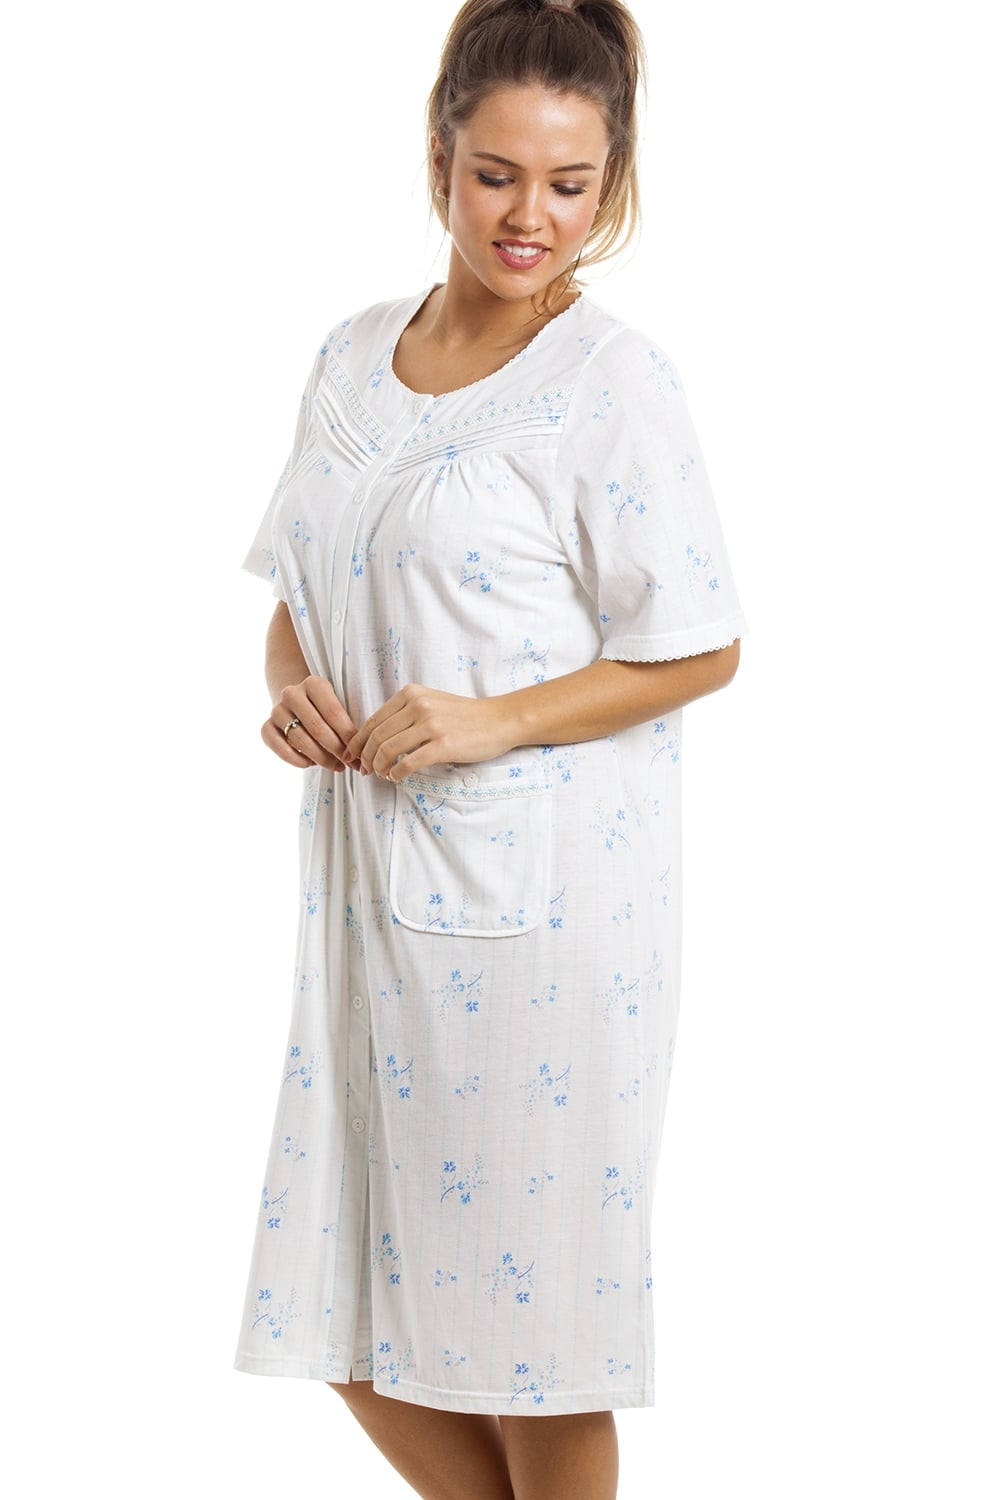 Camille Soft Cosy Knee Length Short Sleeve Blue Floral Button Front  Nightdress 30a7a39ea